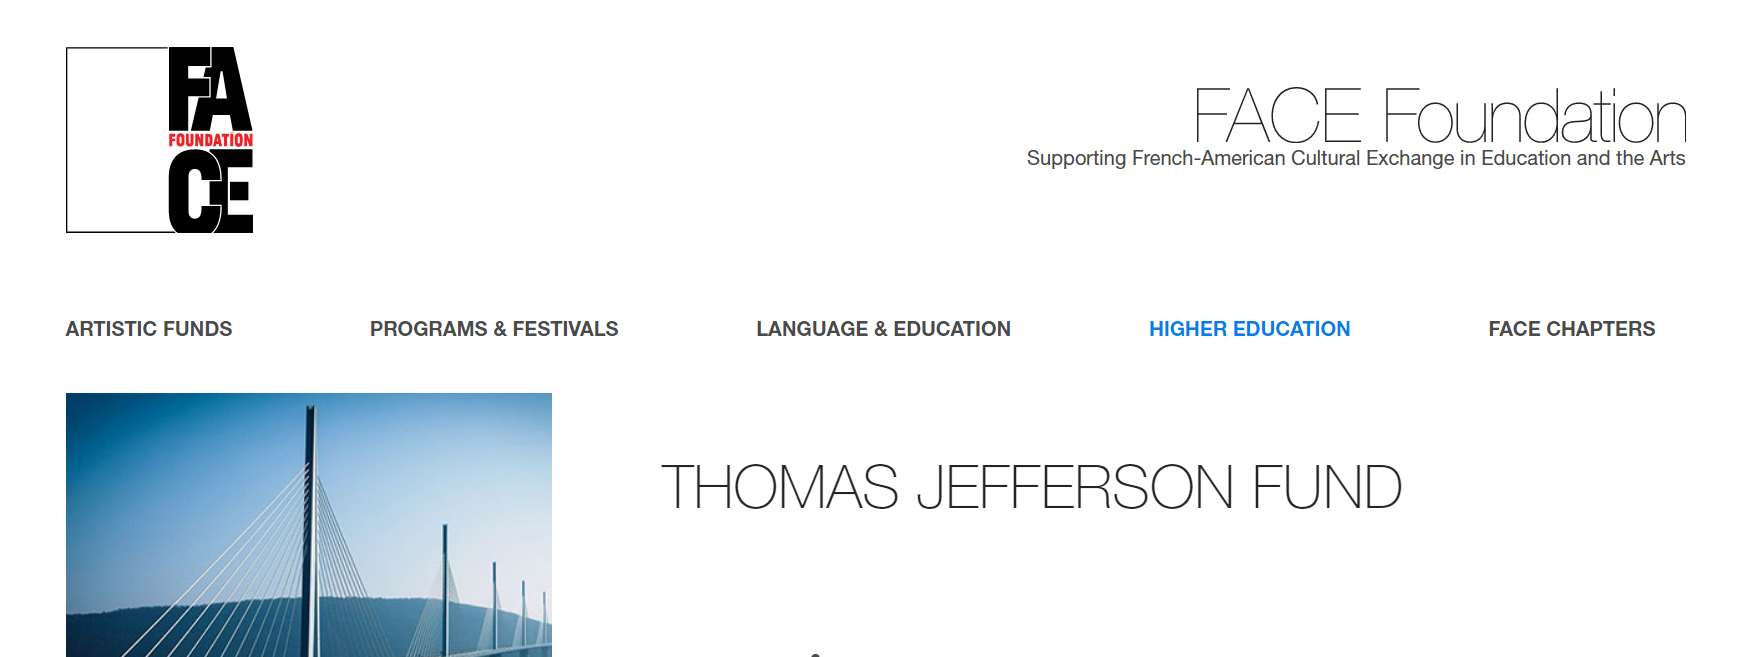 Until February 24, 2021: The Thomas Jefferson Fund Call for Proposals is open.